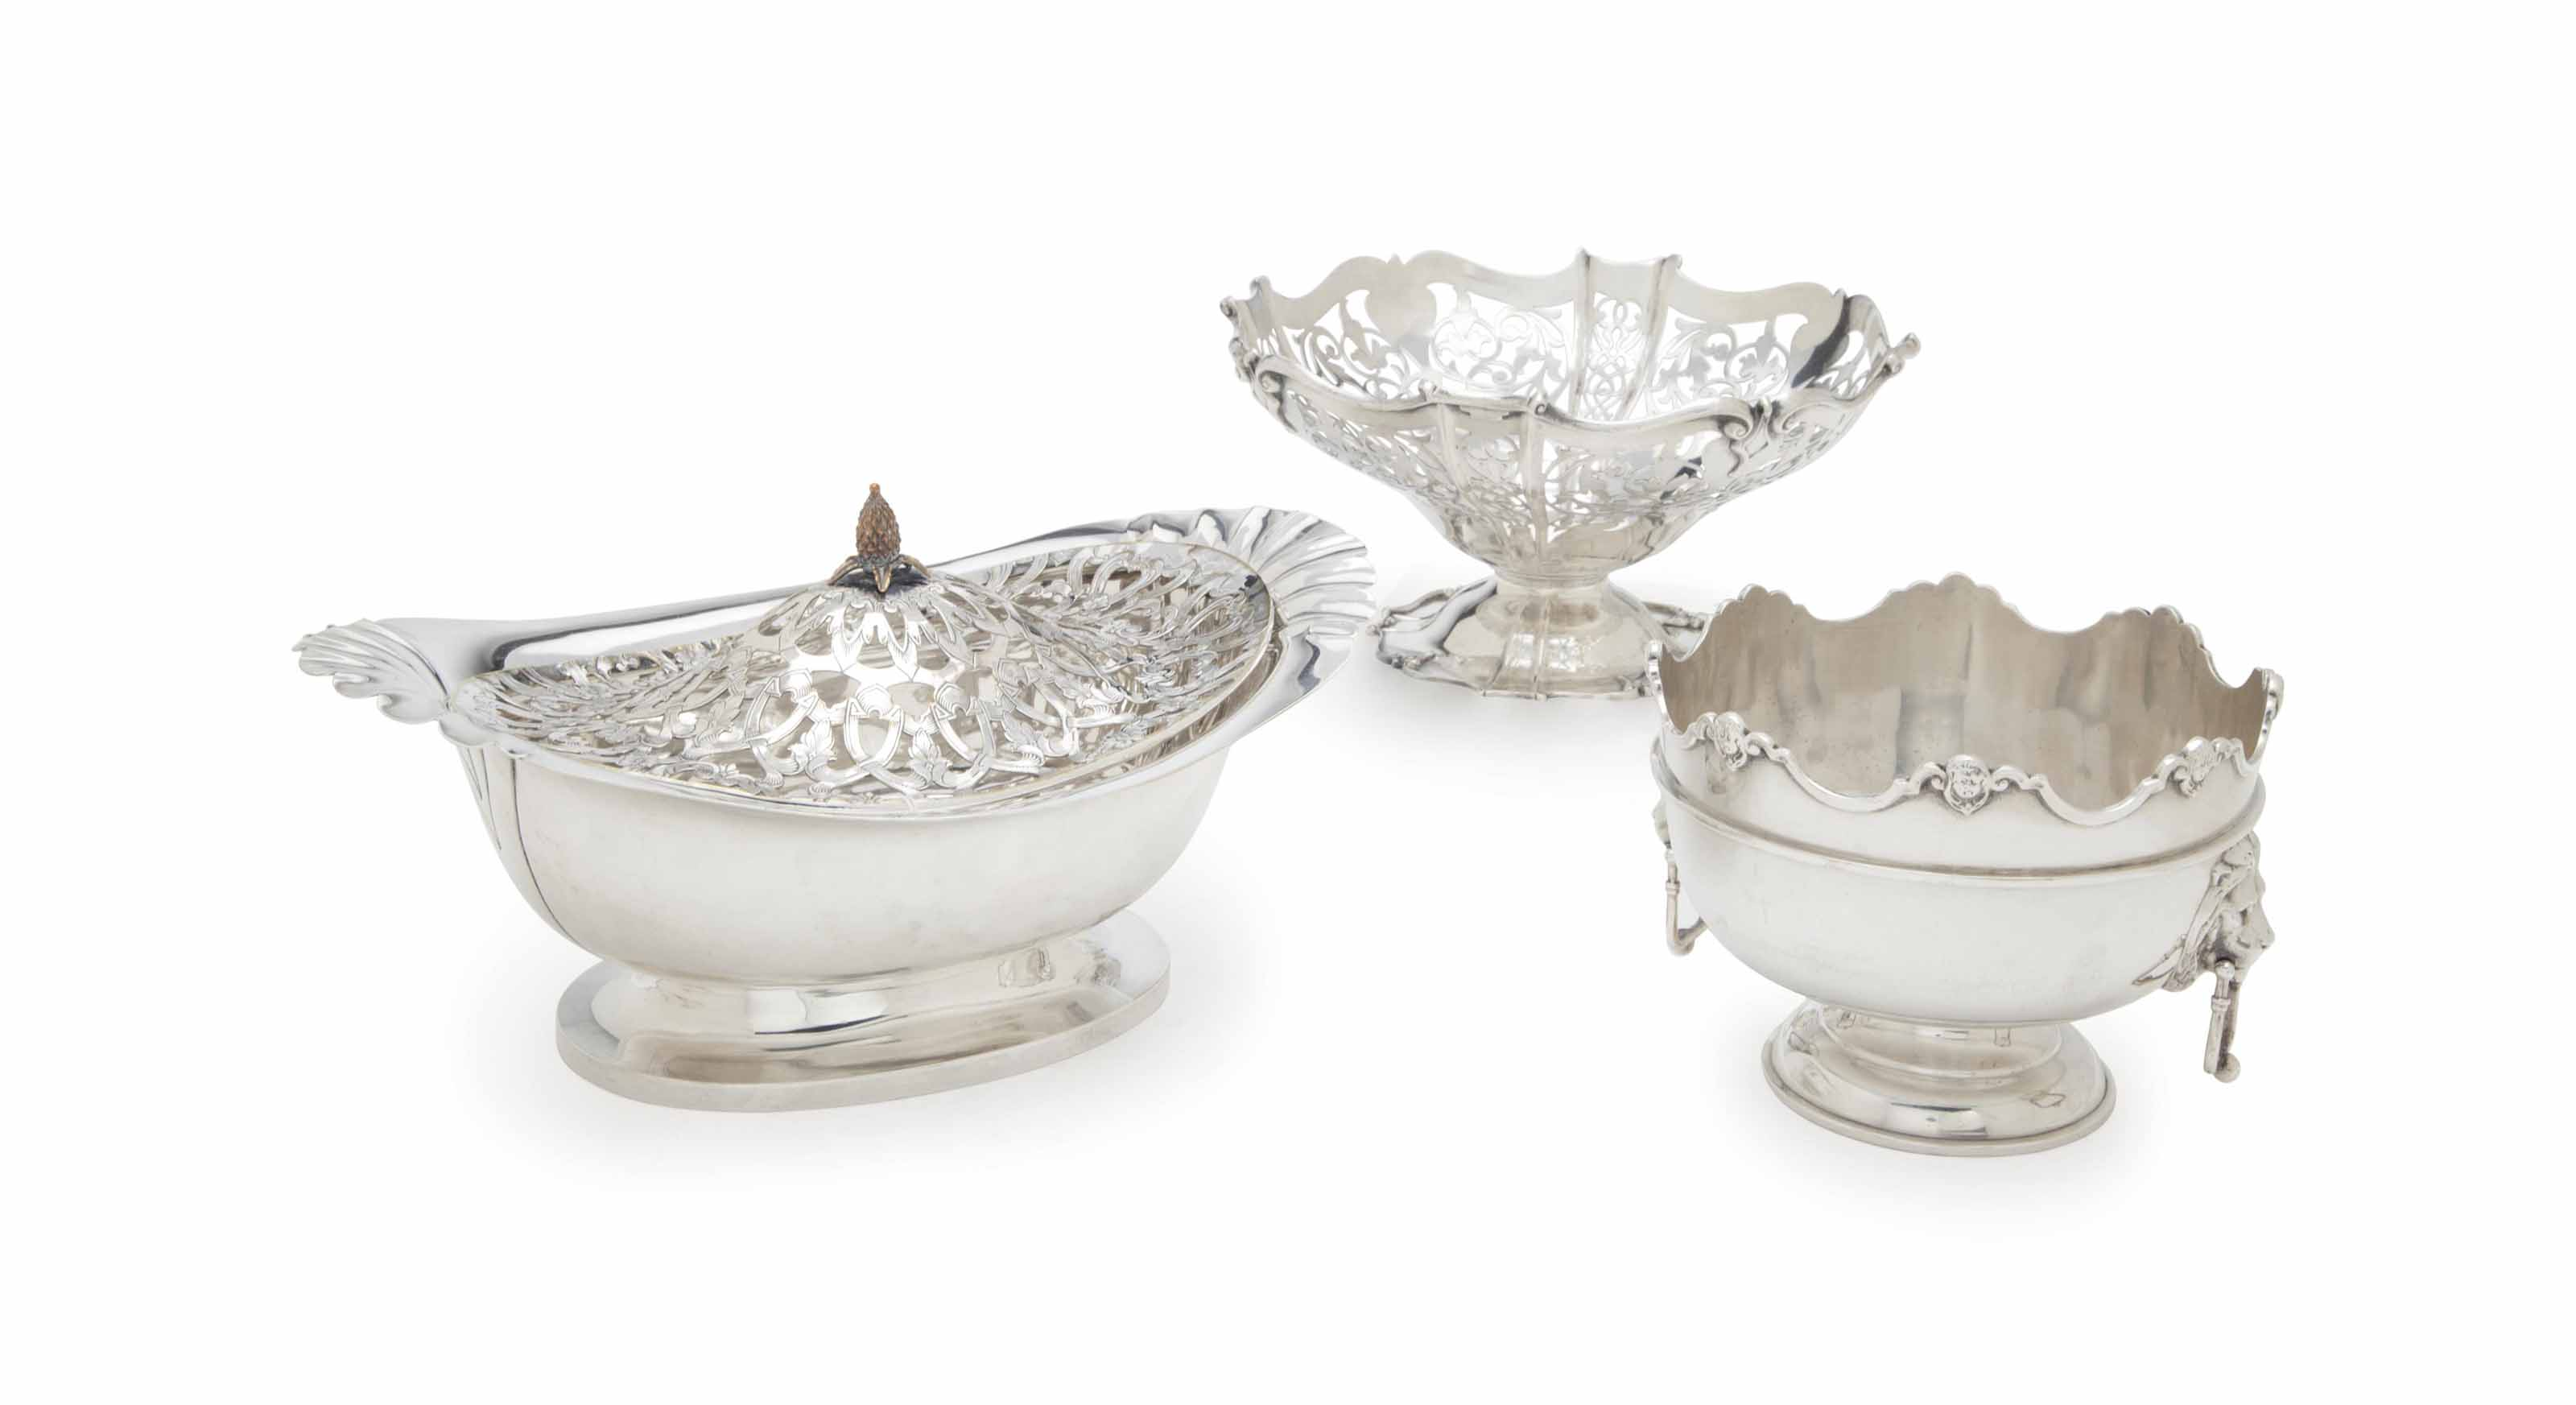 TWO ENGLISH SILVER BOWLS, AND AN AMERICAN SILVER OVAL BOWL